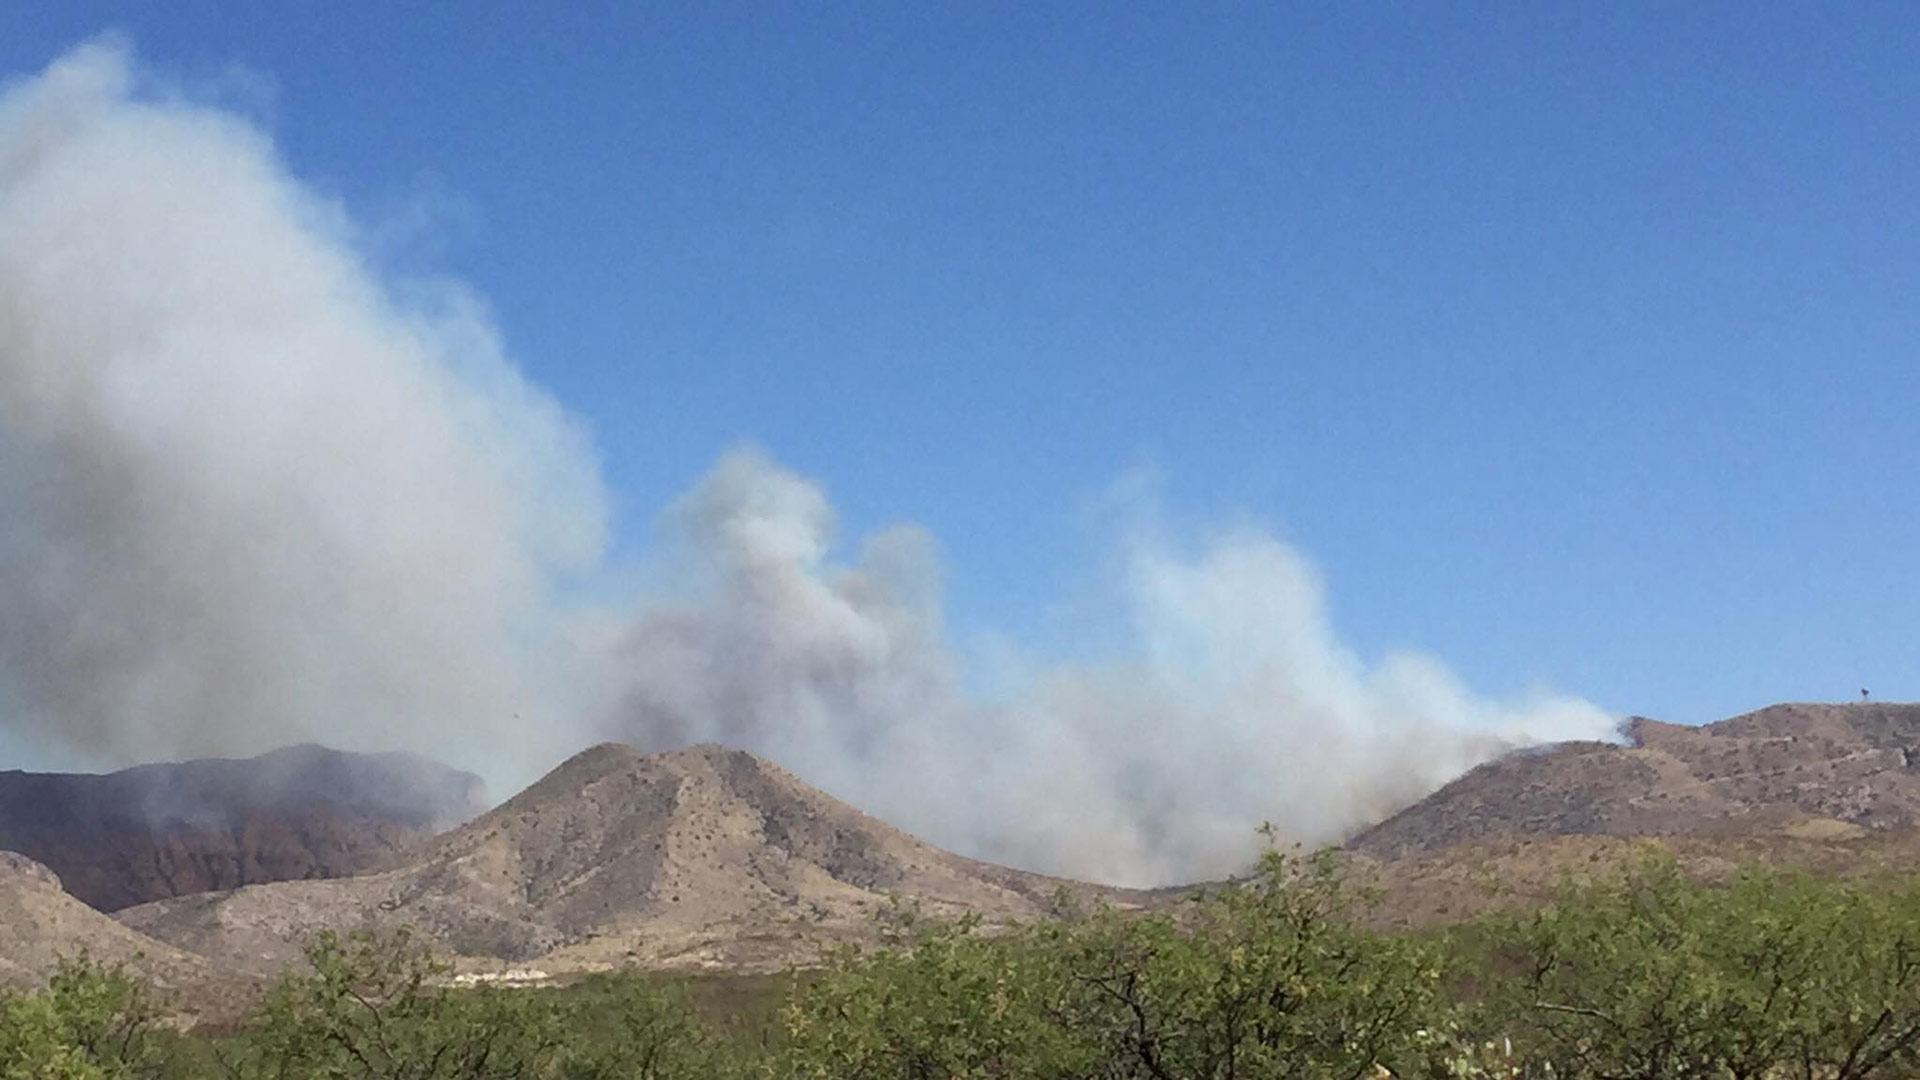 Photo of the Mulberry Fire taken the afternoon of Saturday, May 6, shortly after the wildfire started.